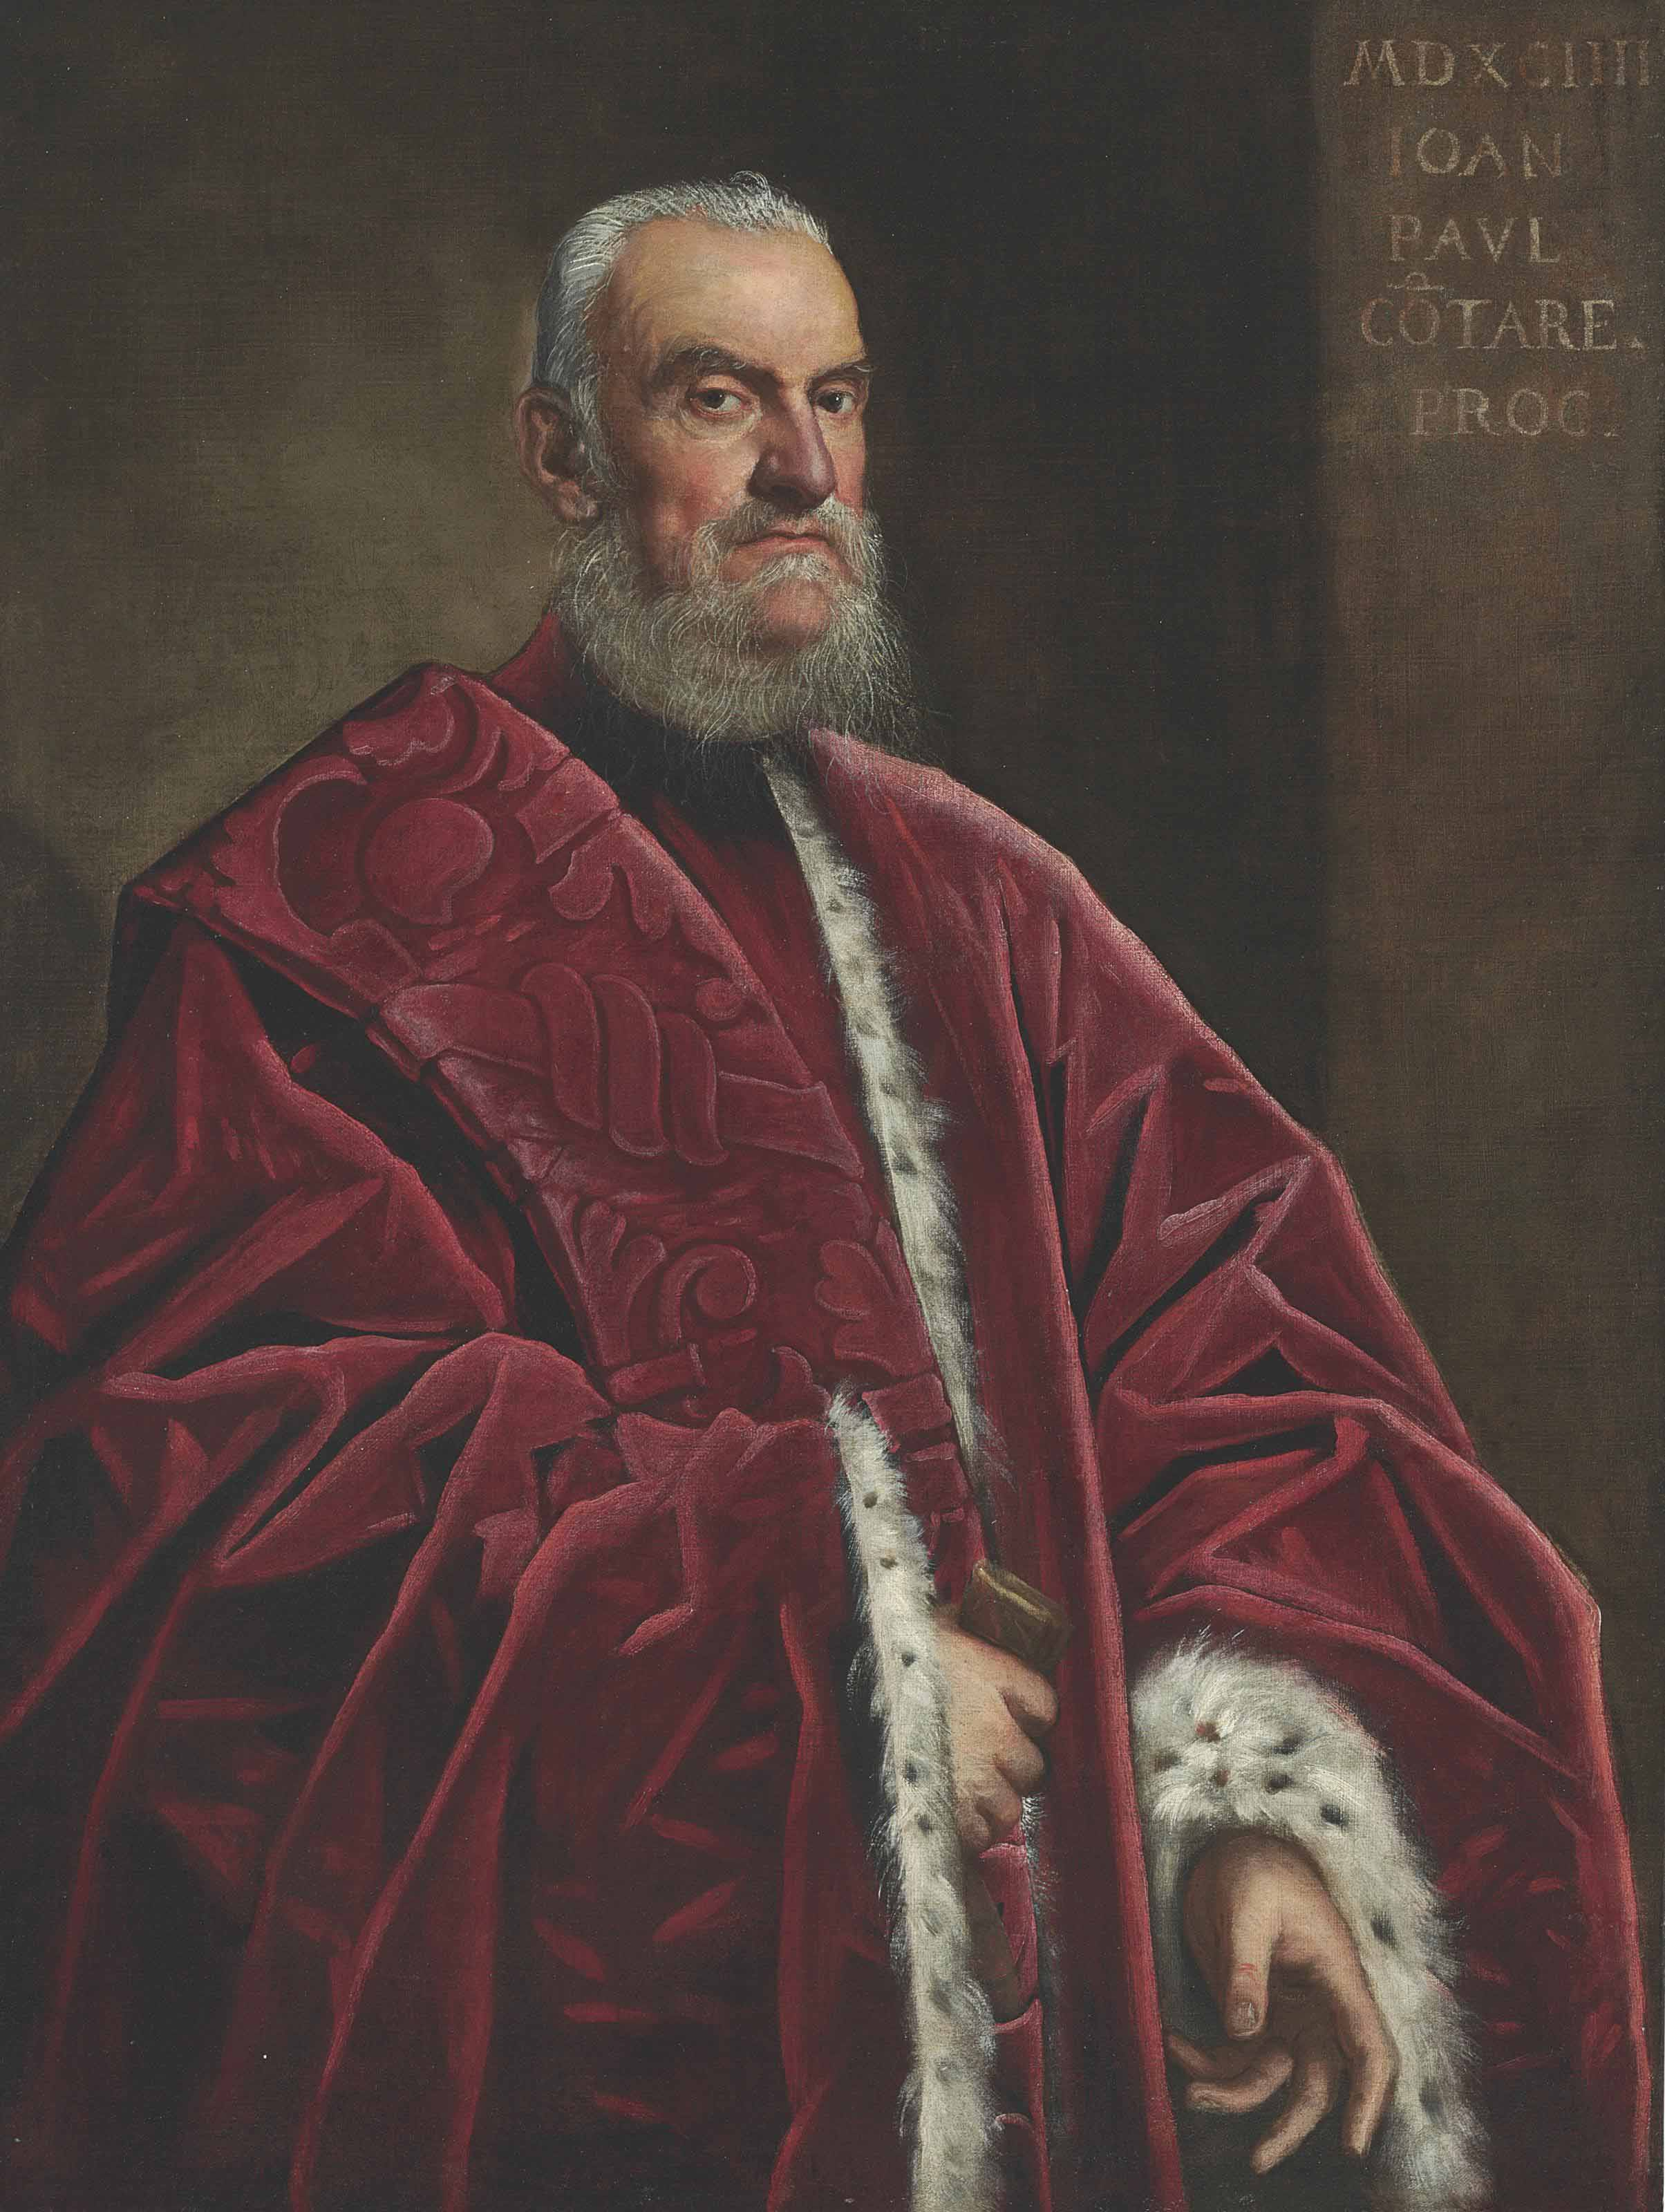 Portrait of Giovanni Paolo Contarini, three-quarter length, in a red ermine-lined robe